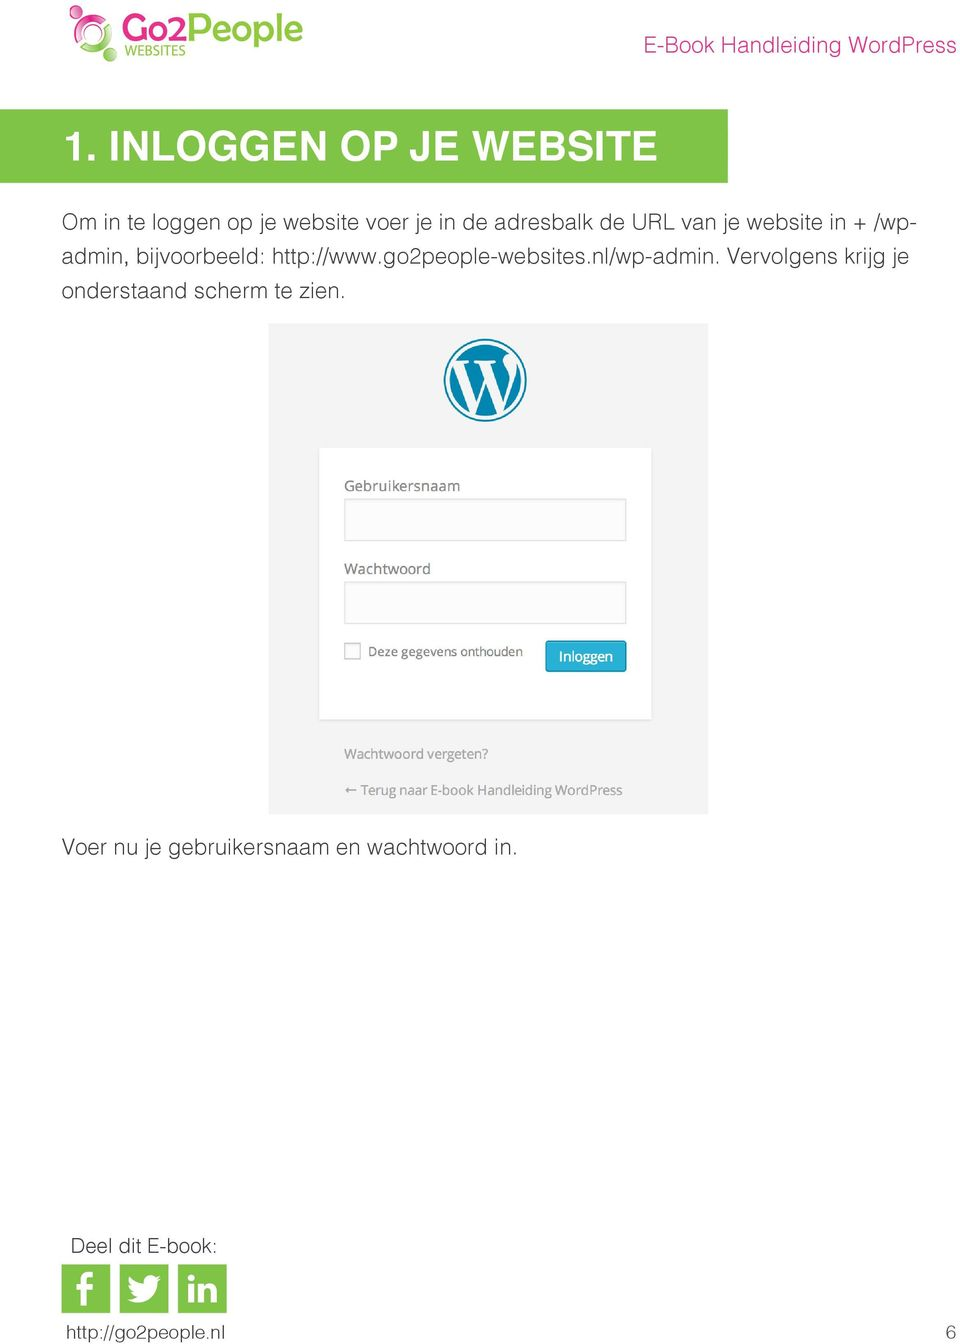 http://www.go2people-websites.nl/wp-admin.